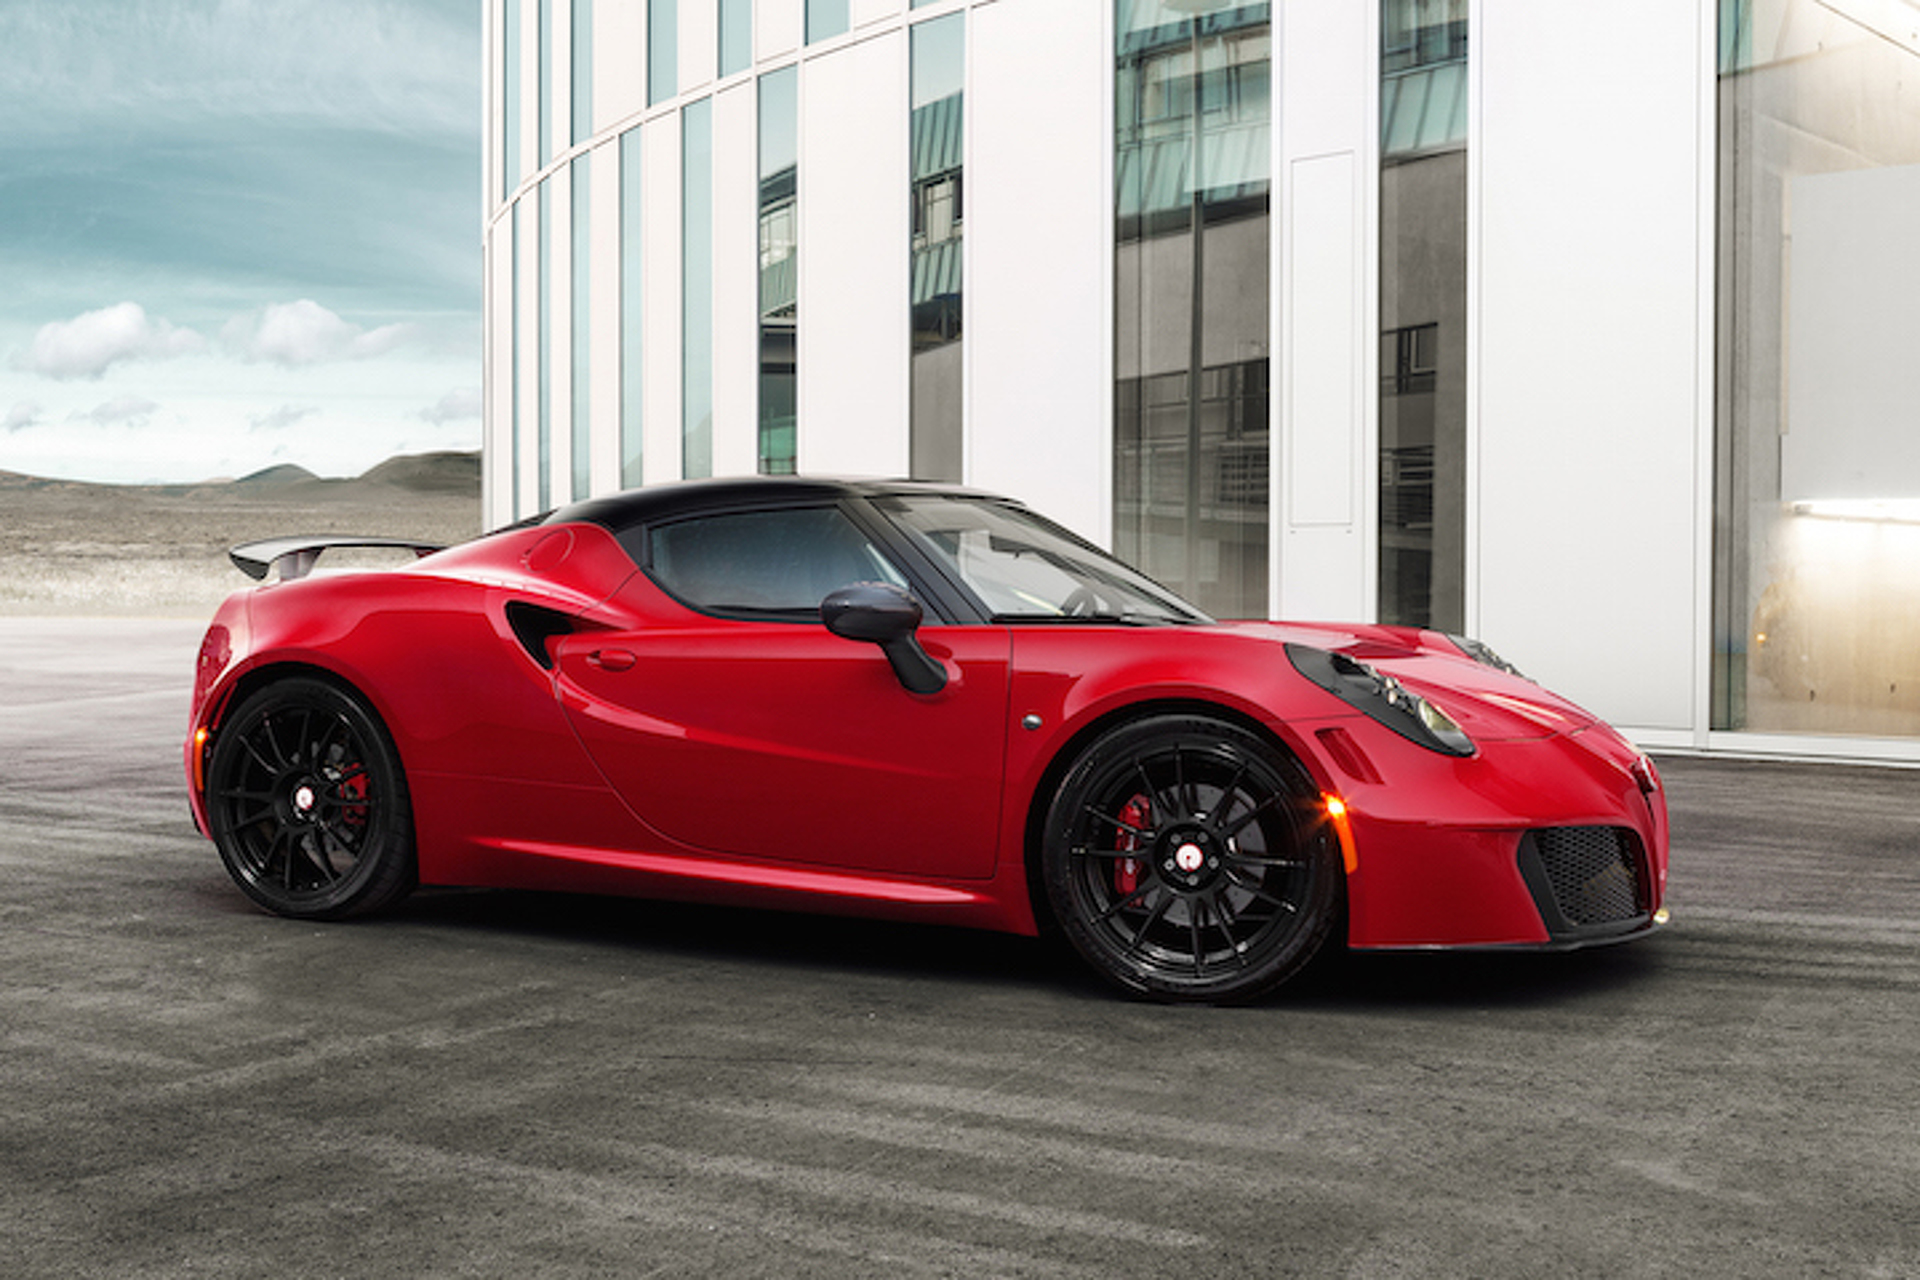 Italian Stallions: Alfa 4C and Fiat 500 Abarth Get Racy Upgrades from Pogea